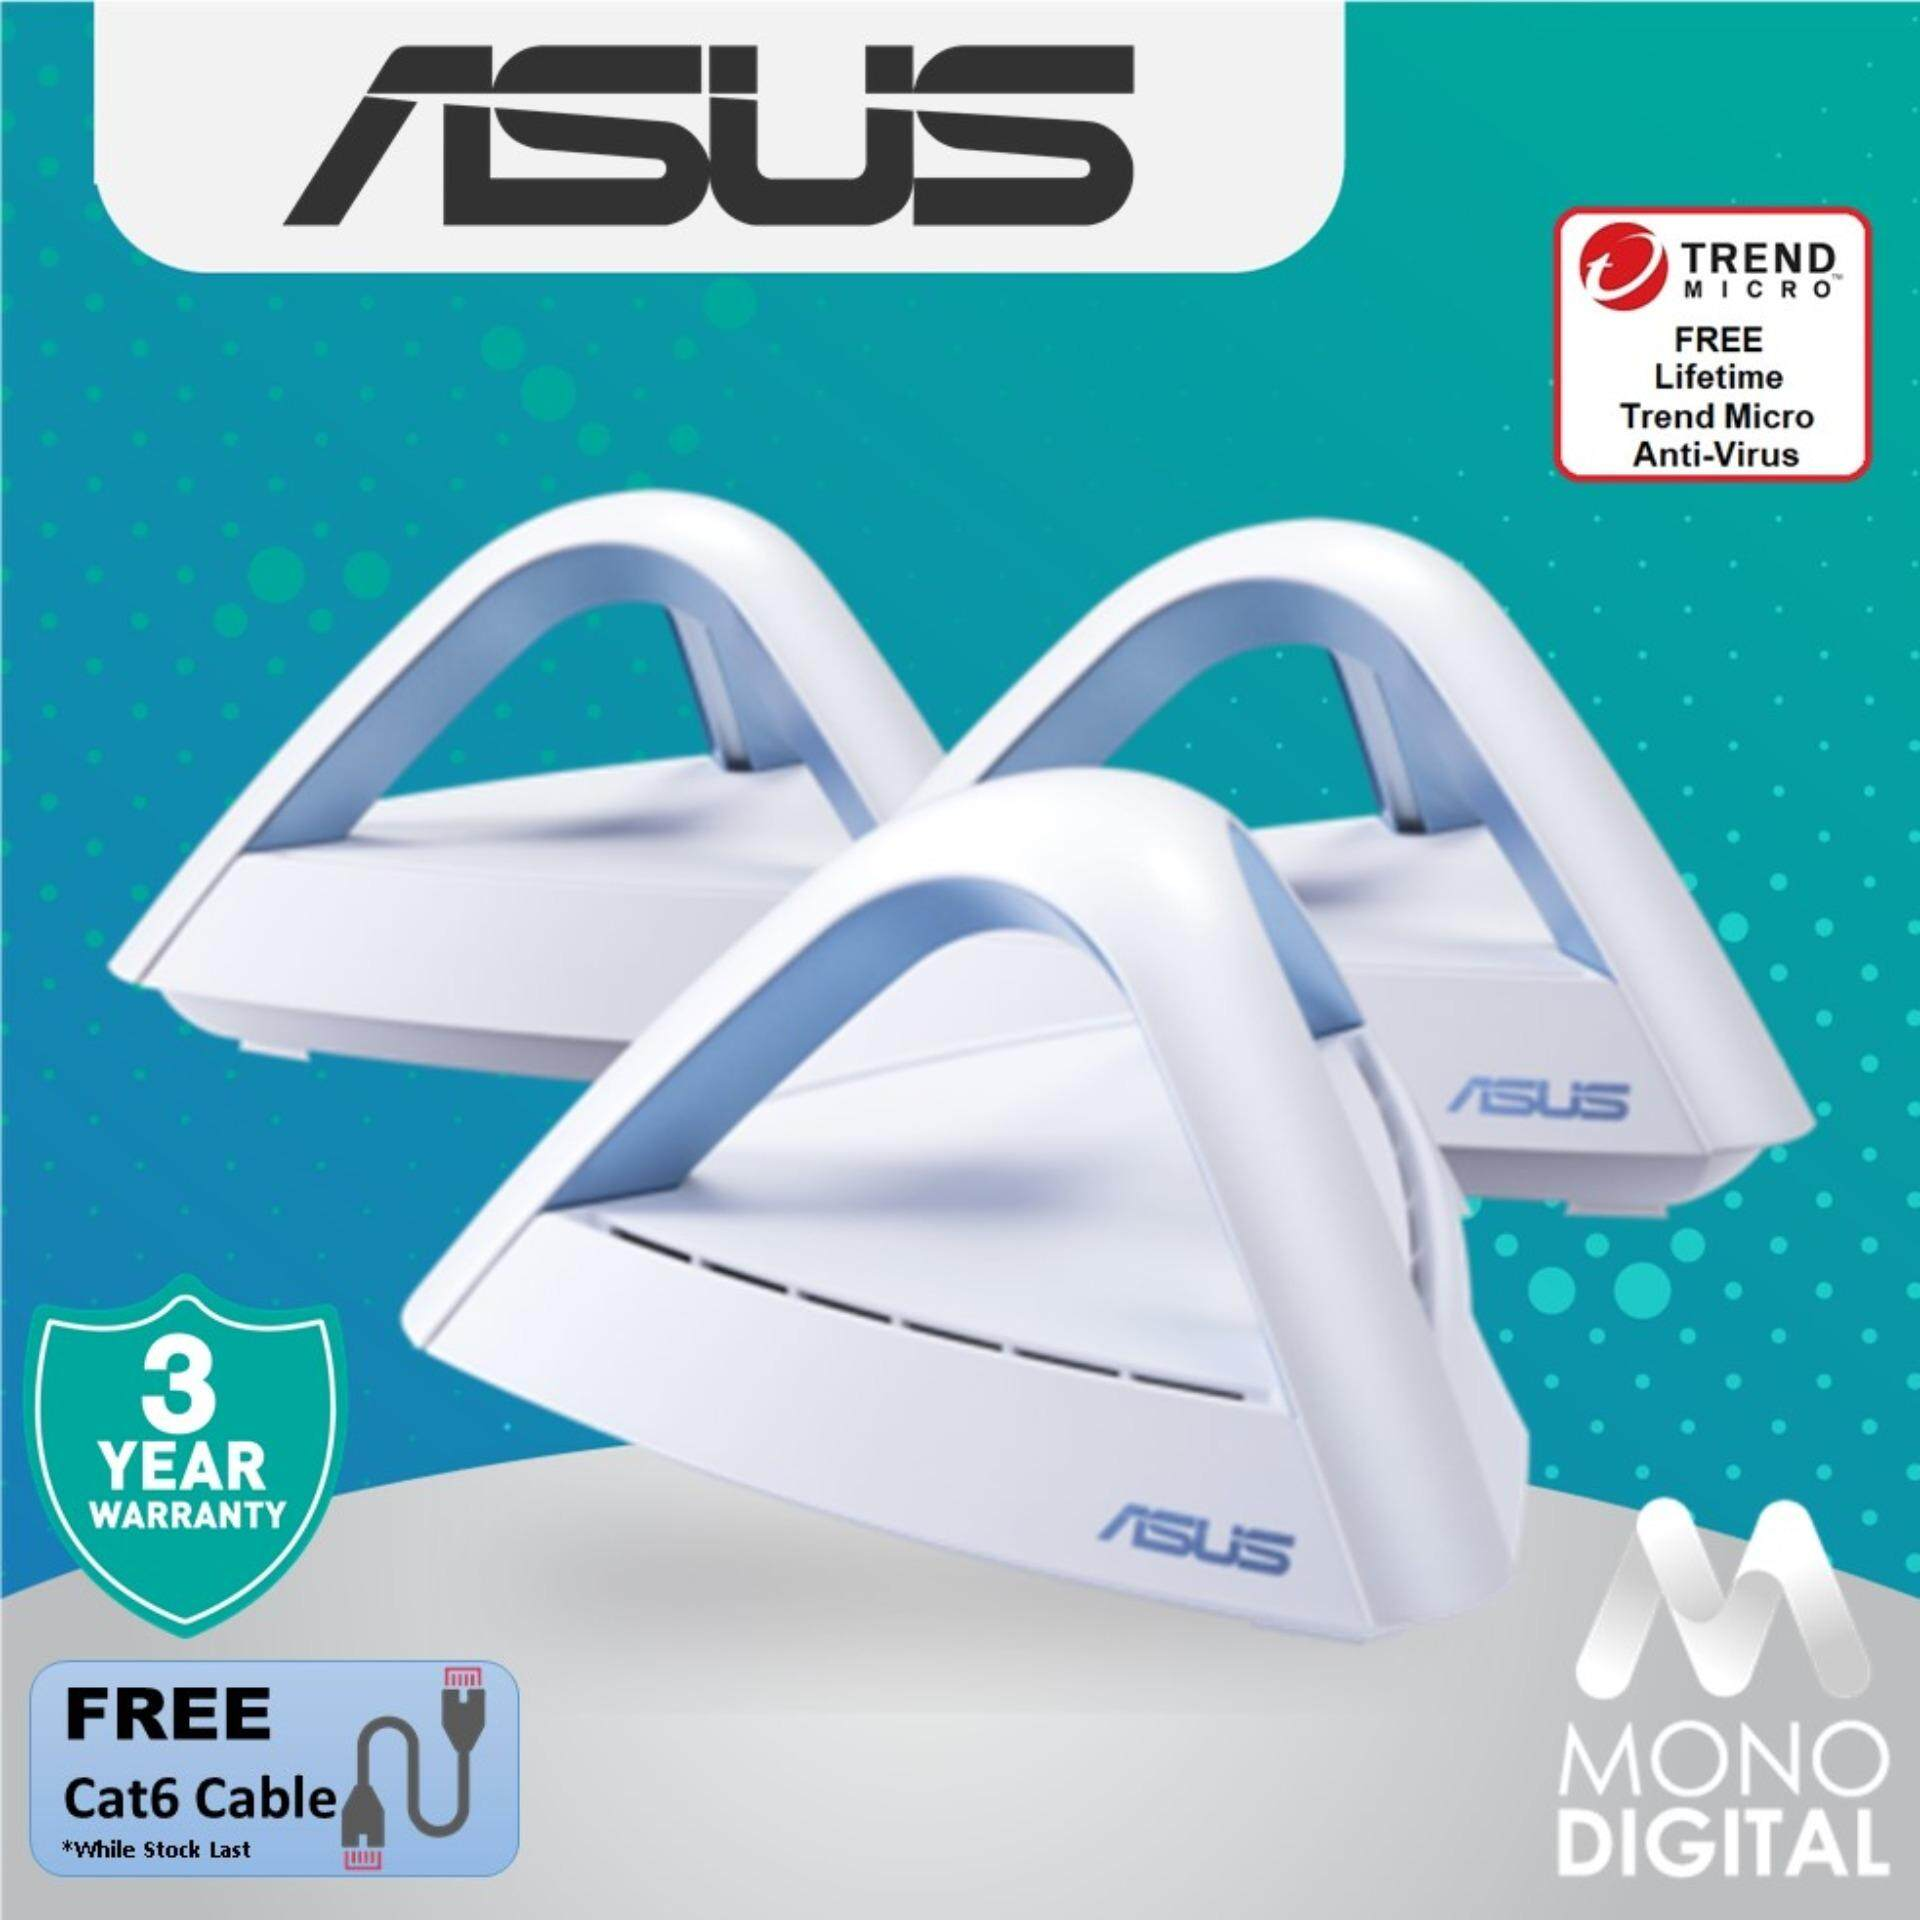 ASUS LYRA TRIO (3-Pack) AC1750 Dual Band Mesh WiFi System For UNIFI, MAXIS  and TIME Fibre Wireless Routers Wifi Routers Mesh Network Mesh Router (Free